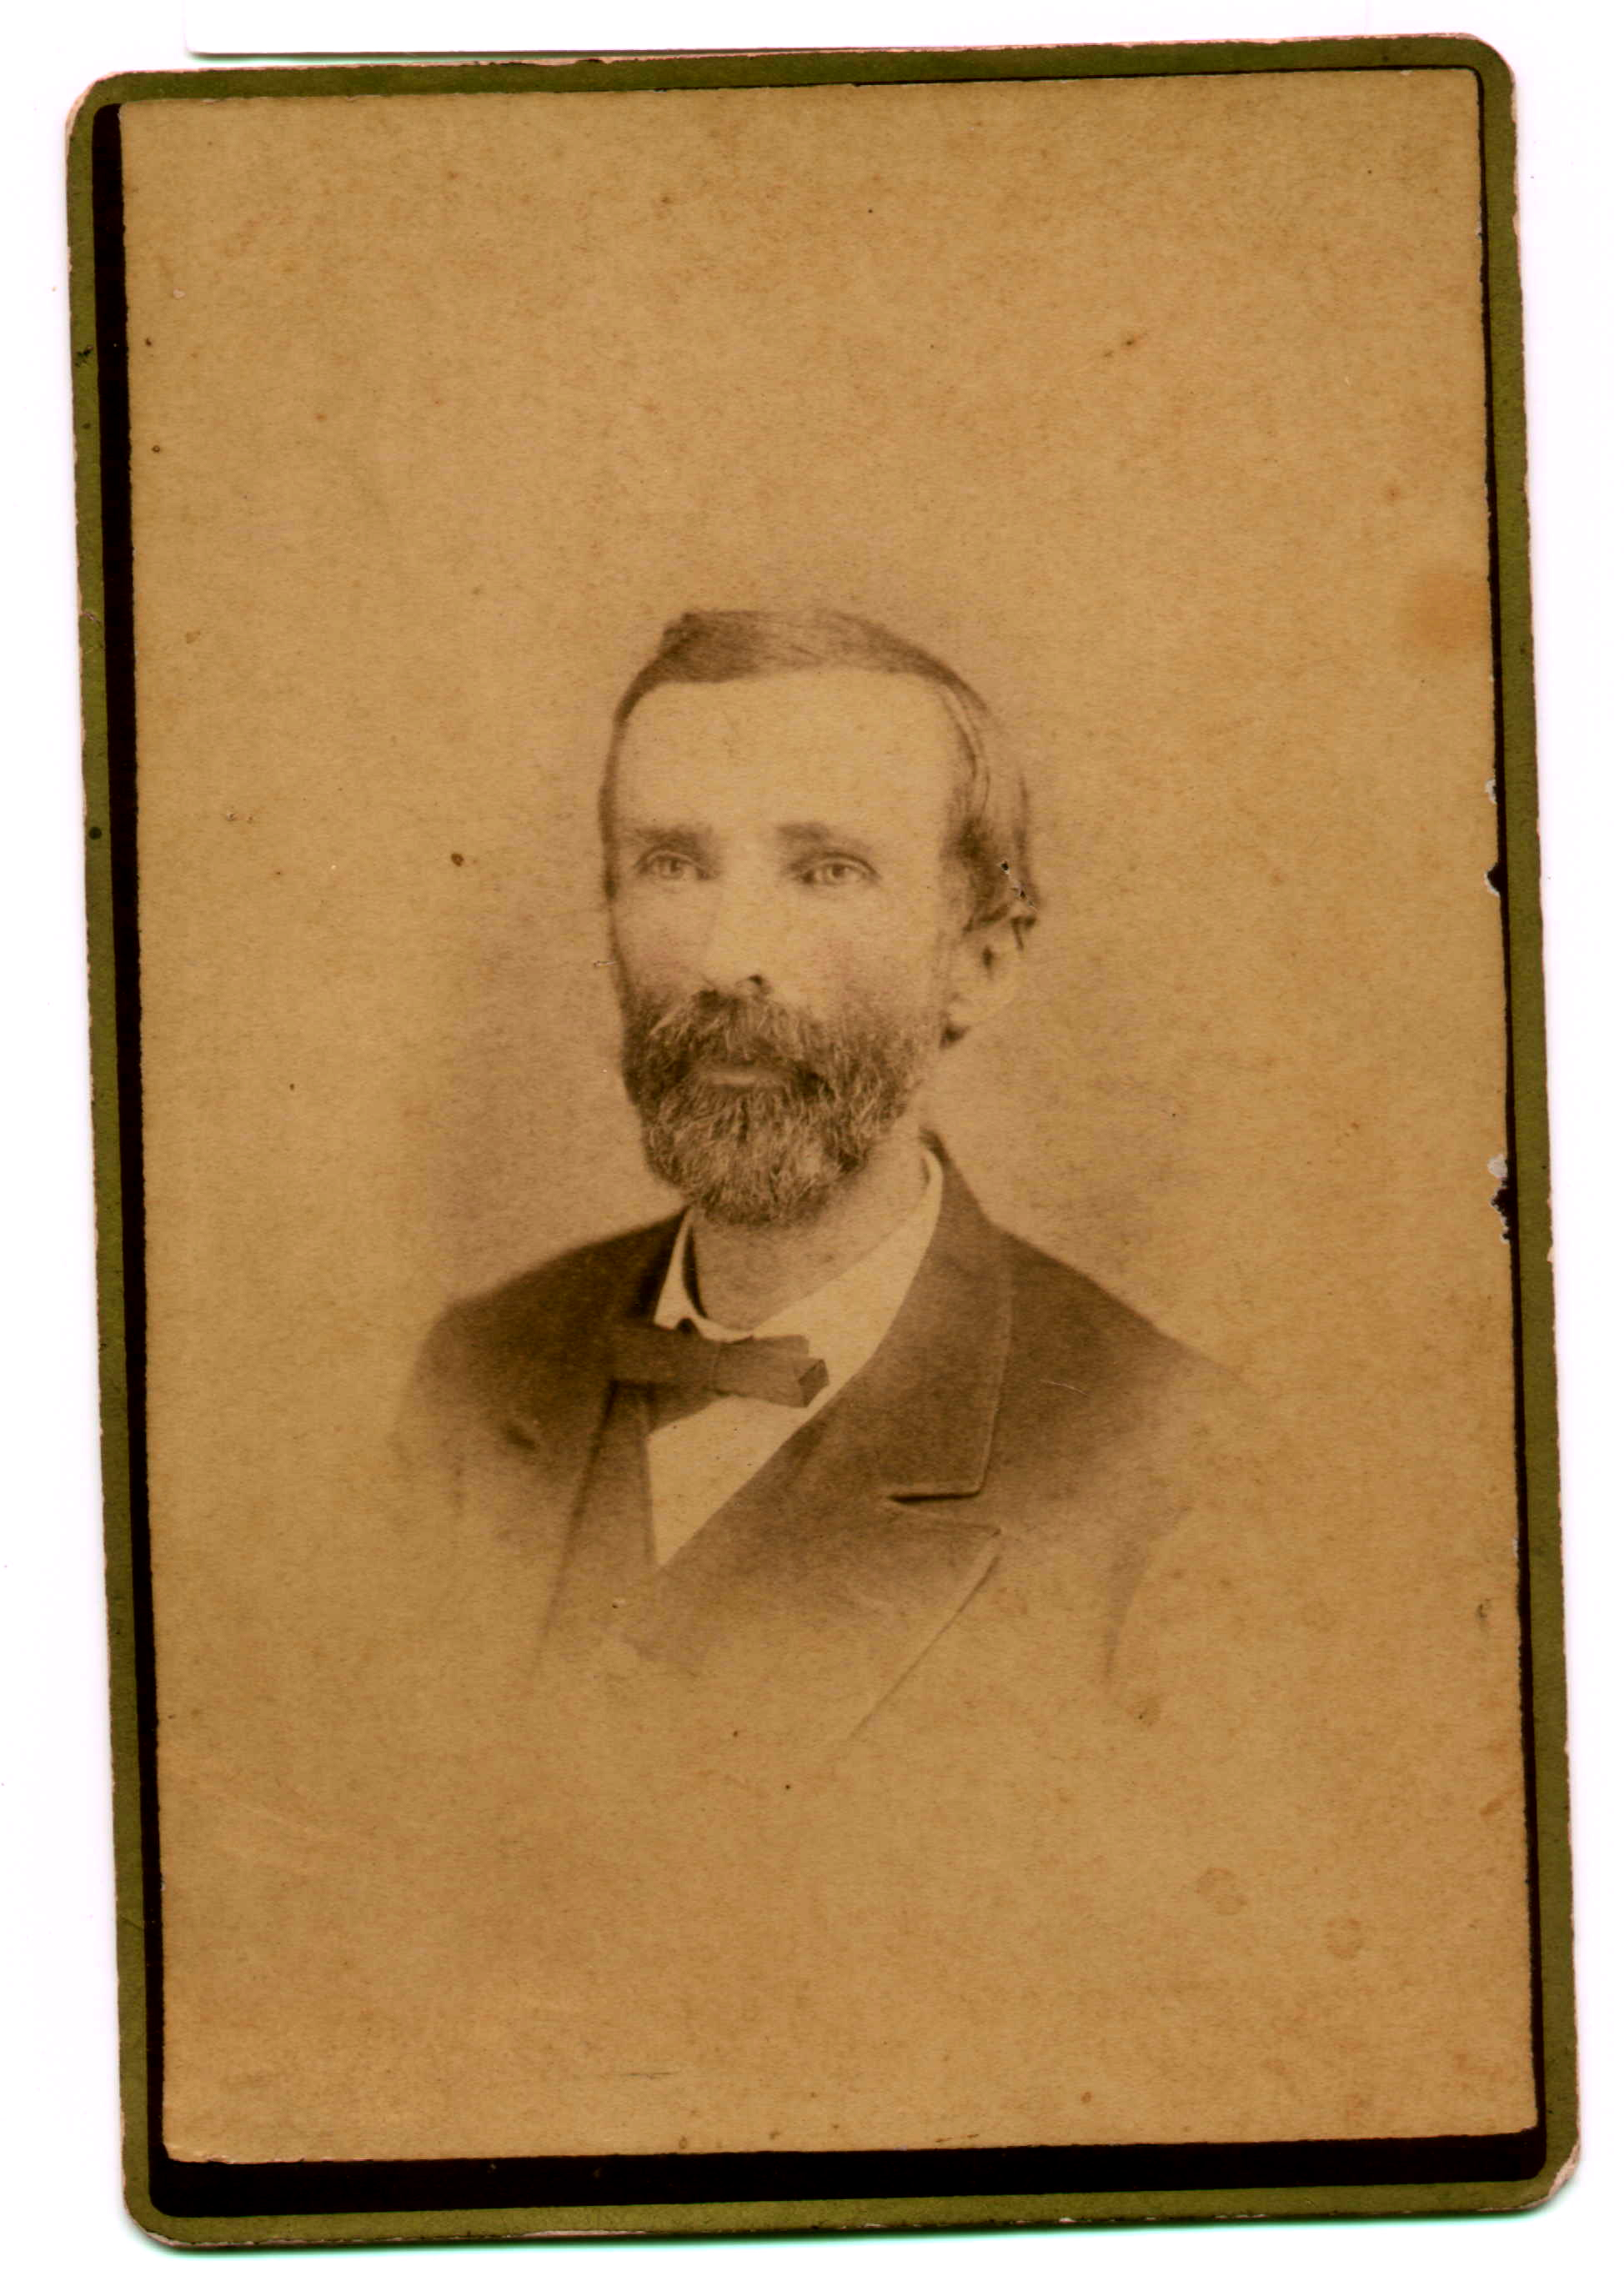 descendants of adam hitch 1658 59 1731 of old somerset co md